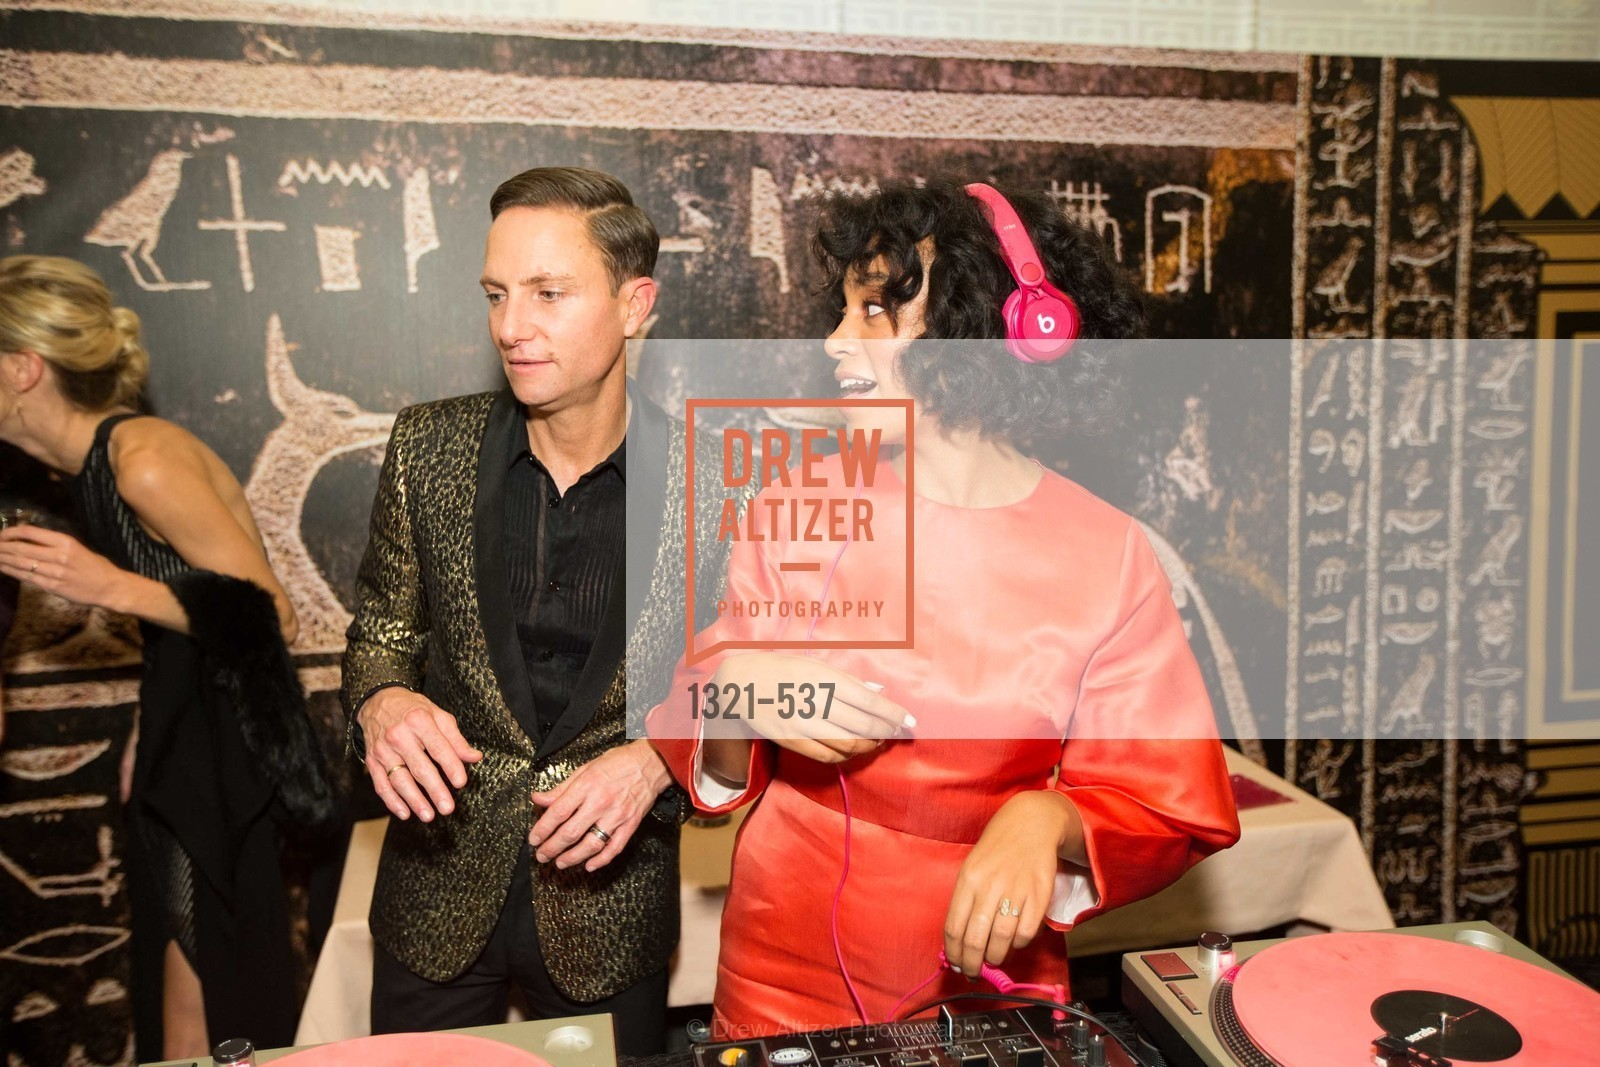 Ken Fulk, Dj, TOP OF THE MARK'S 75TH Anniversary Party, US, November 7th, 2014,Drew Altizer, Drew Altizer Photography, full-service event agency, private events, San Francisco photographer, photographer California